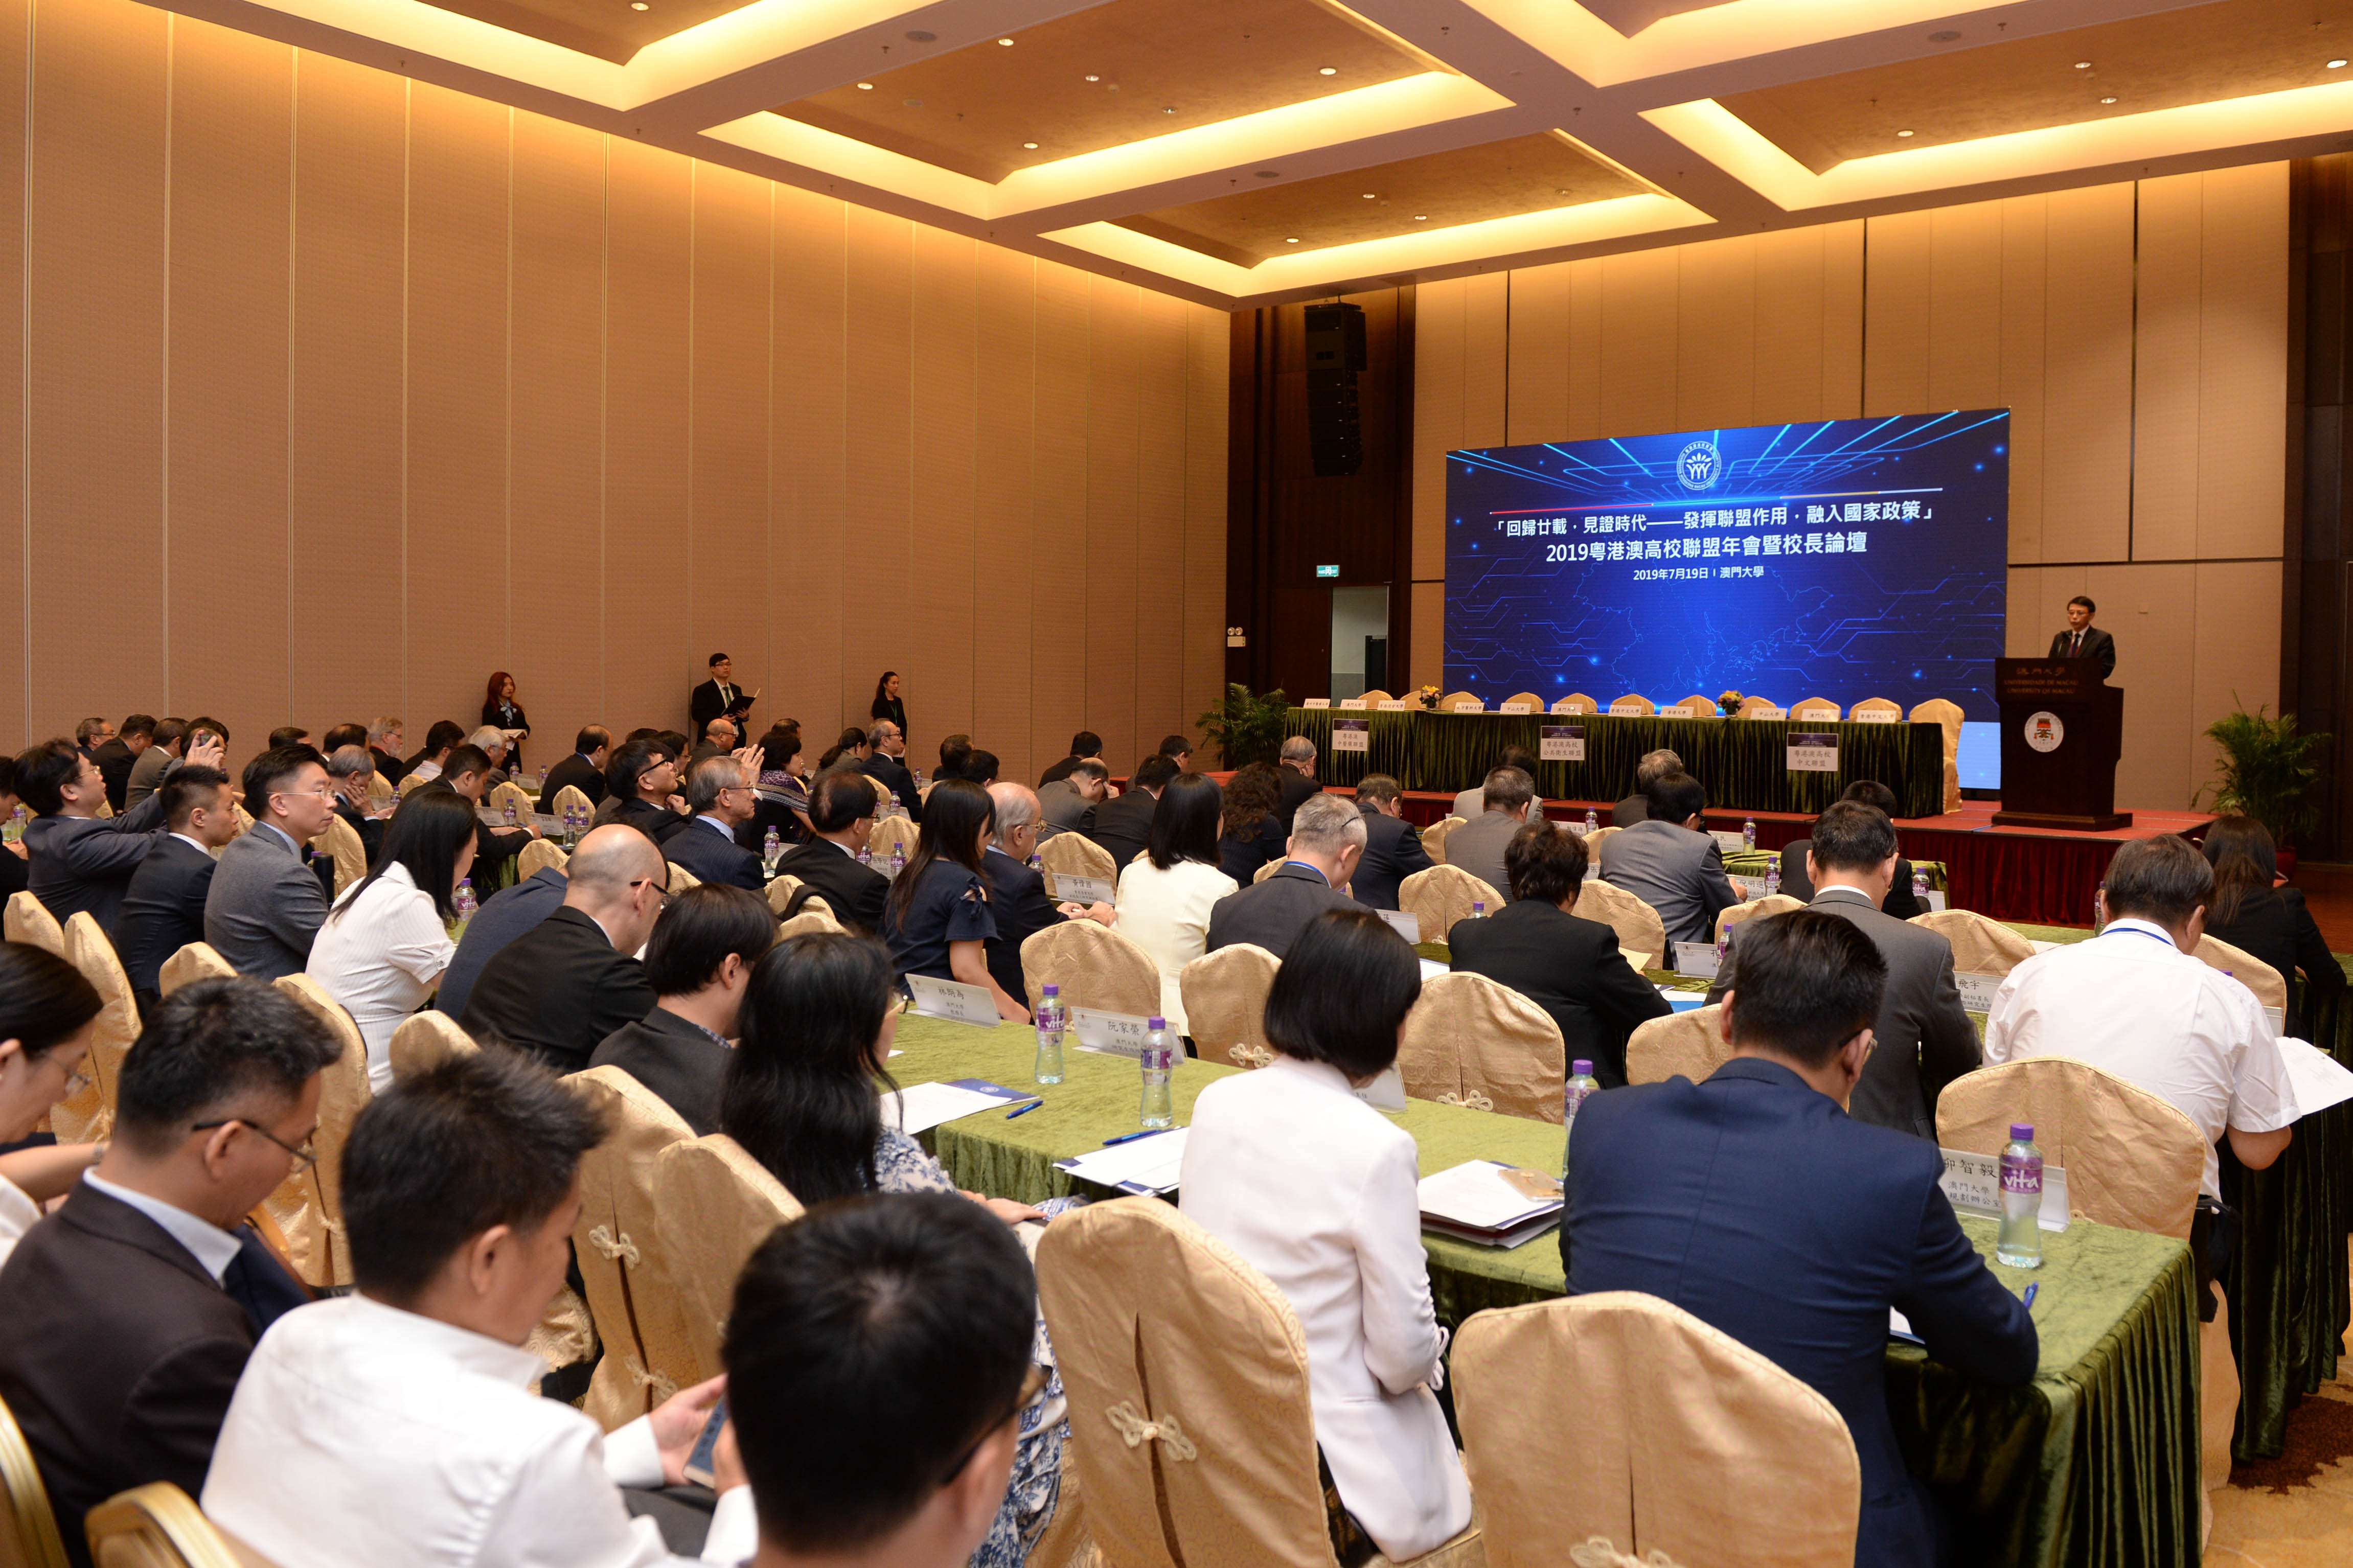 University presidents, experts and scholars participate in the forum